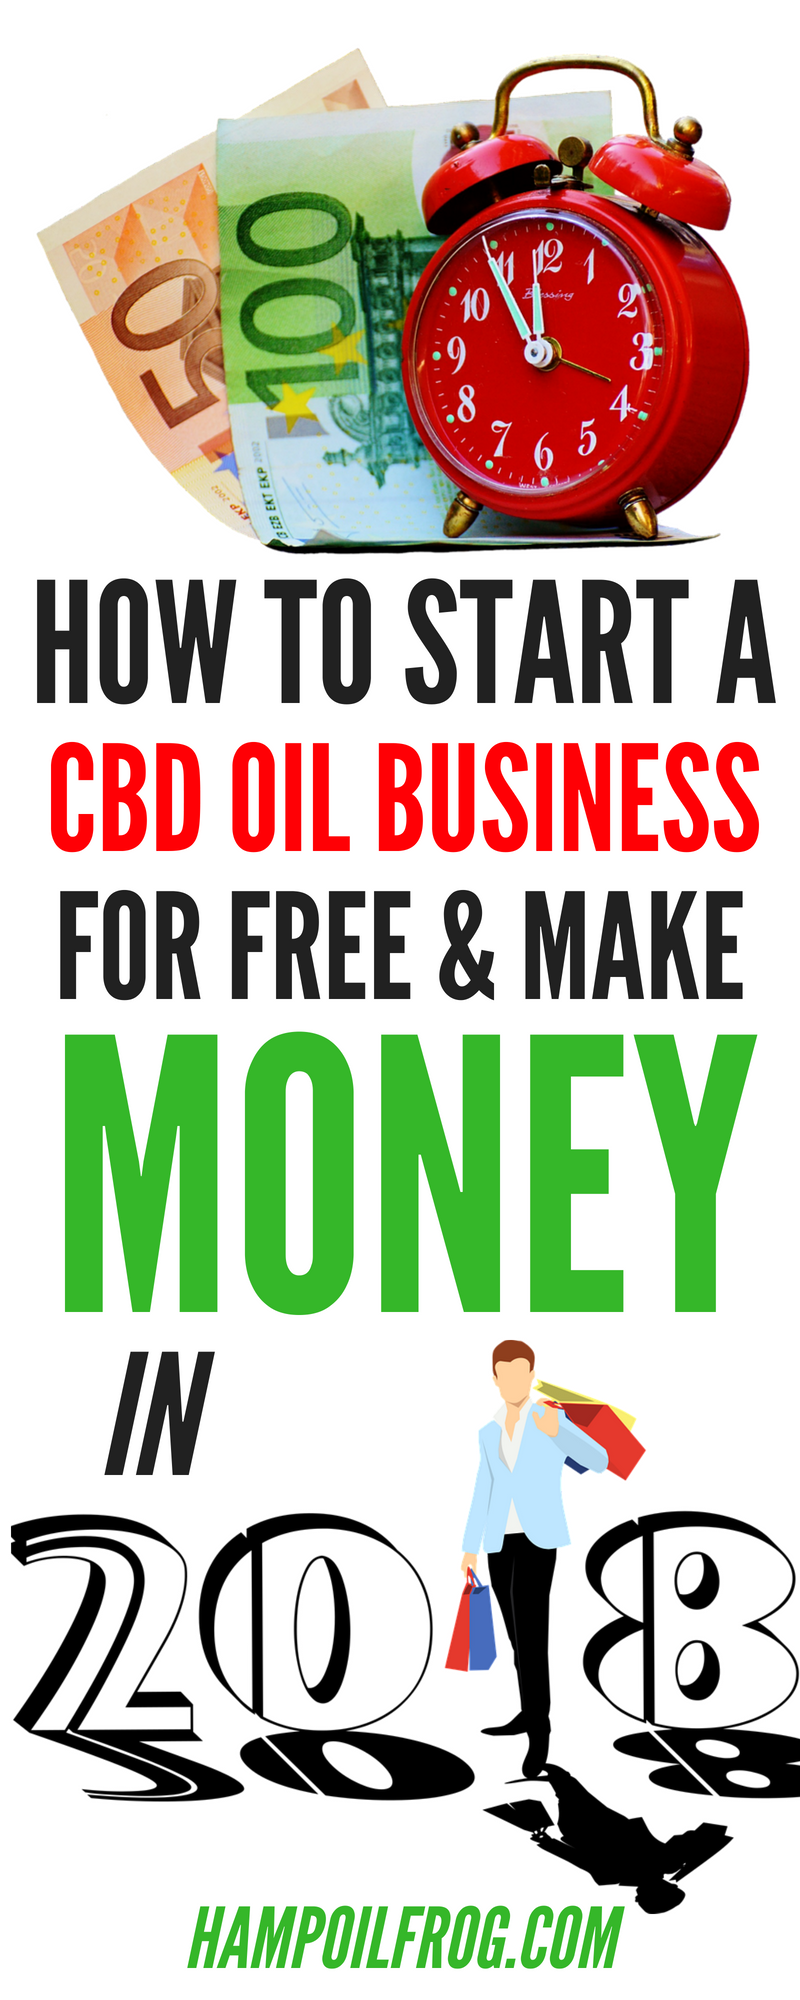 How To Make Money In Stocks Amazon Dropship Cbd – SABBWWA